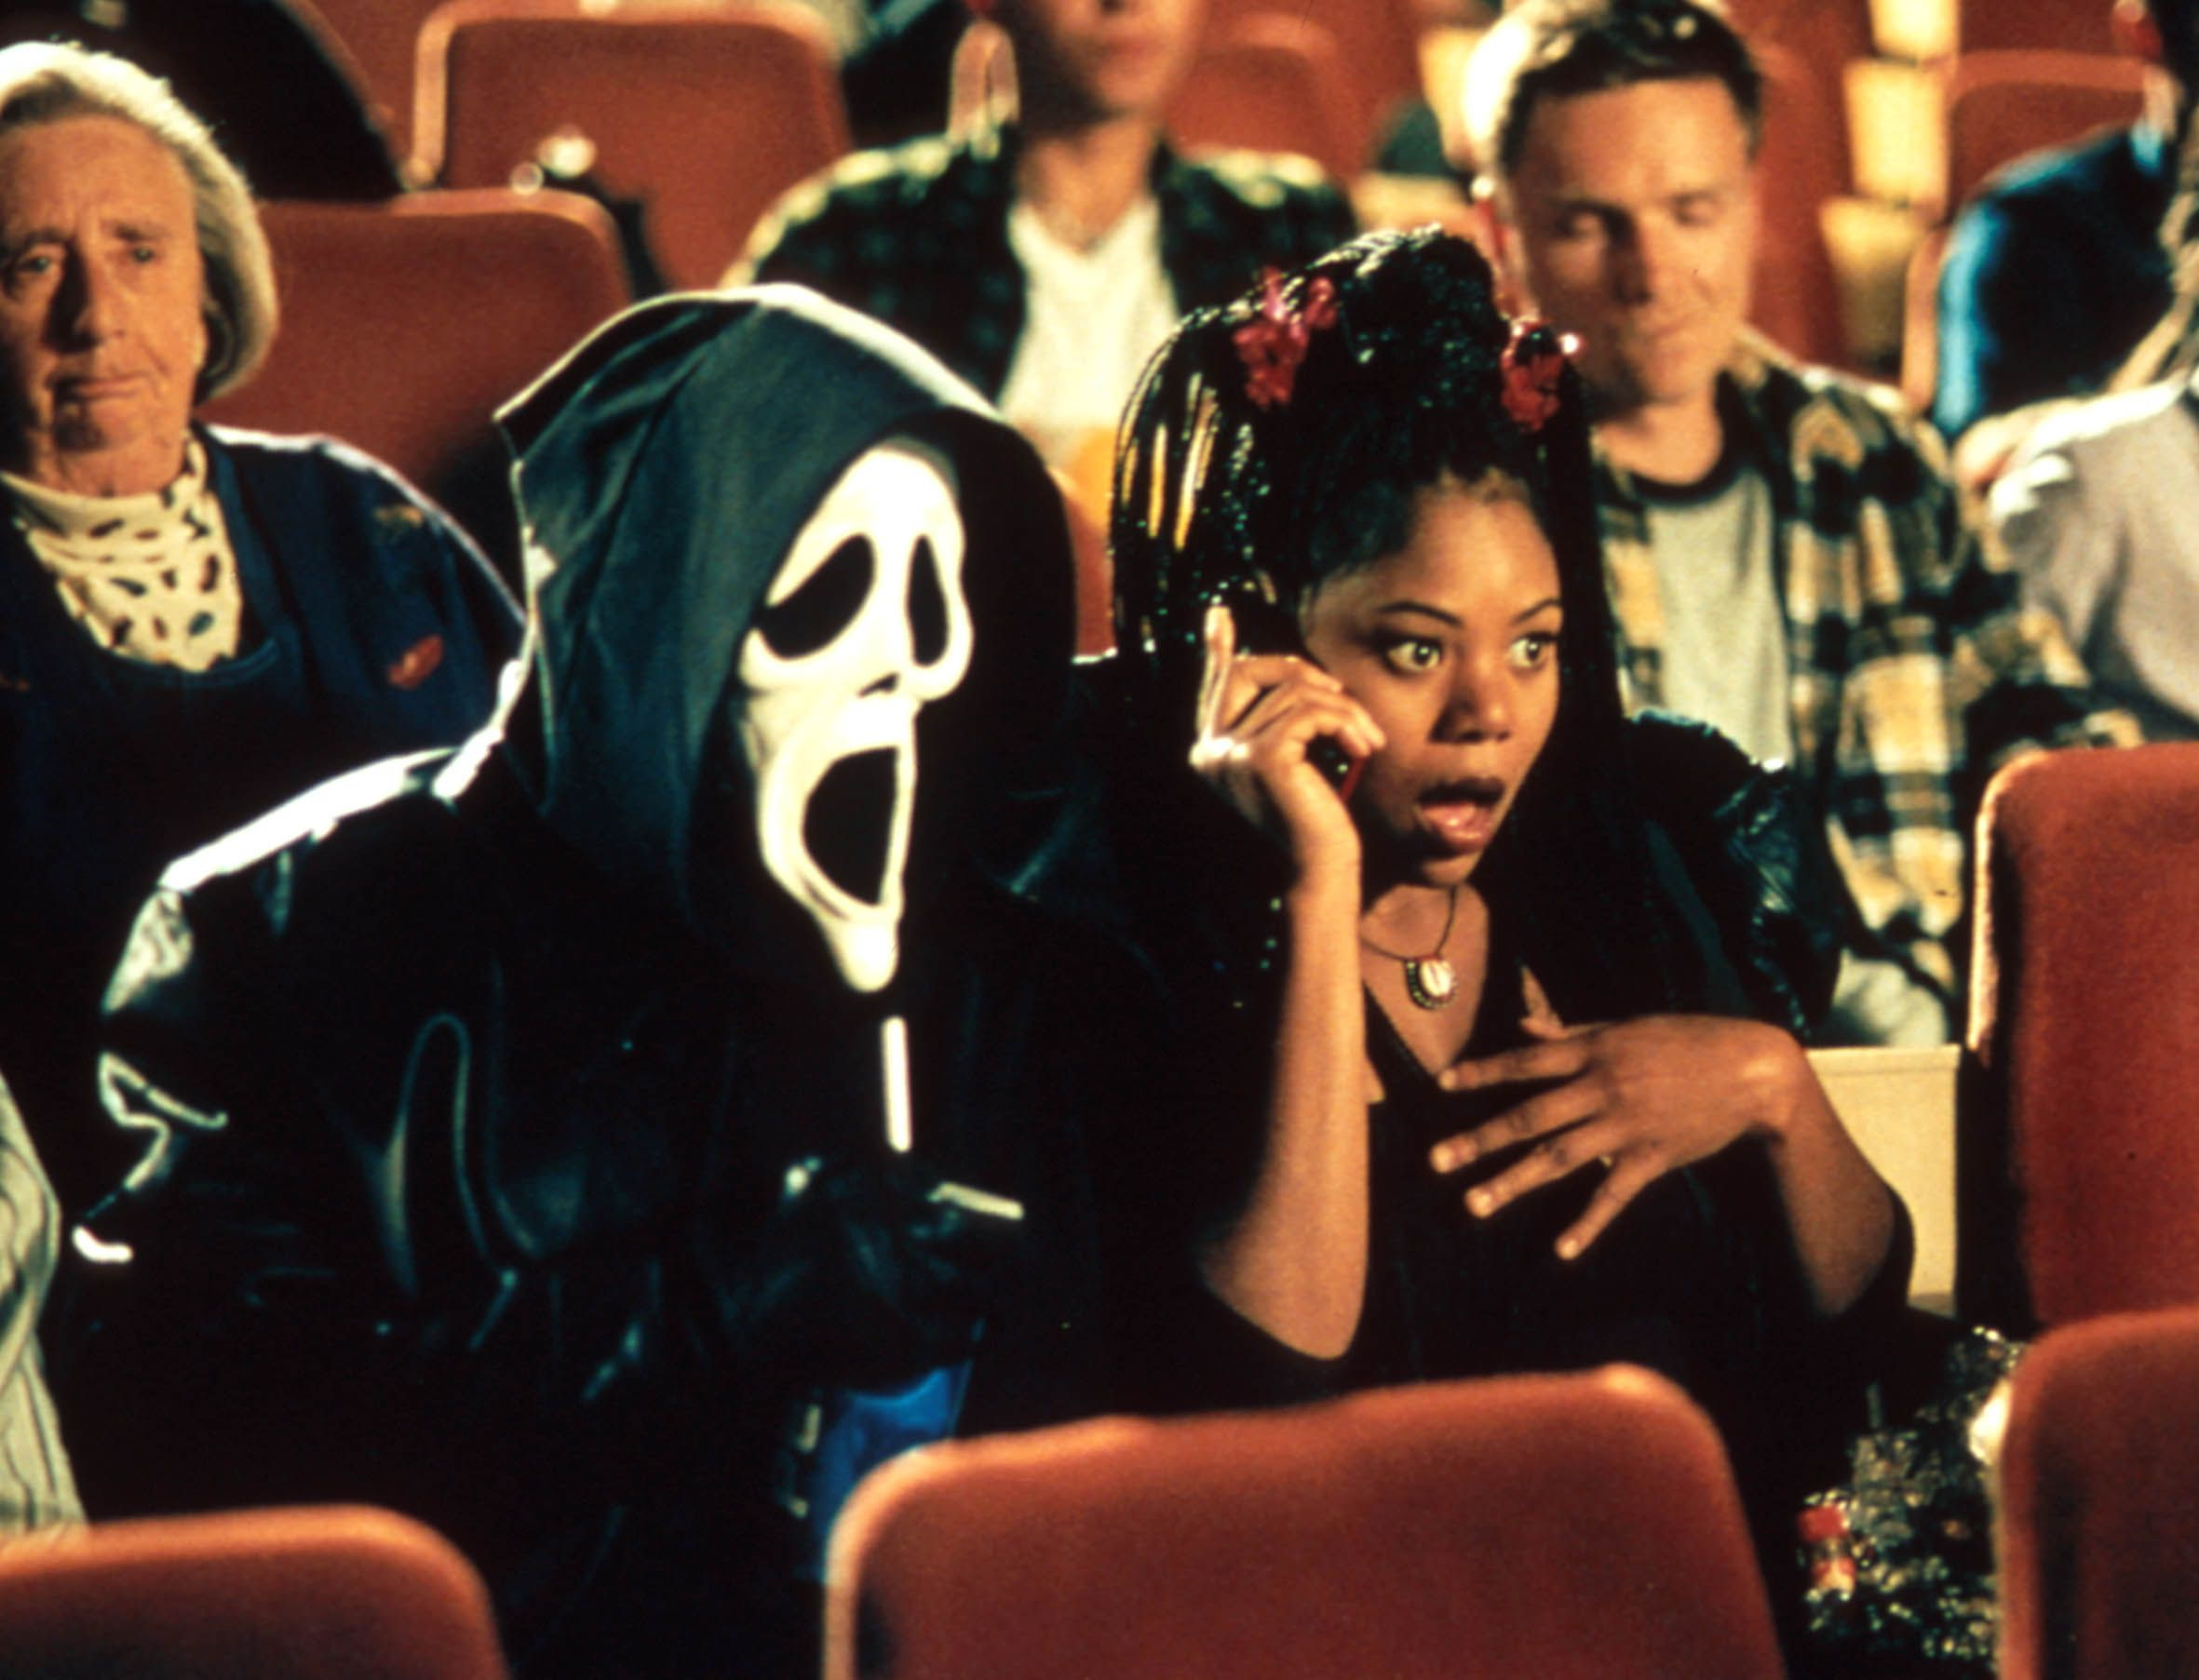 Scary Movie creators reveal what would be cut out today